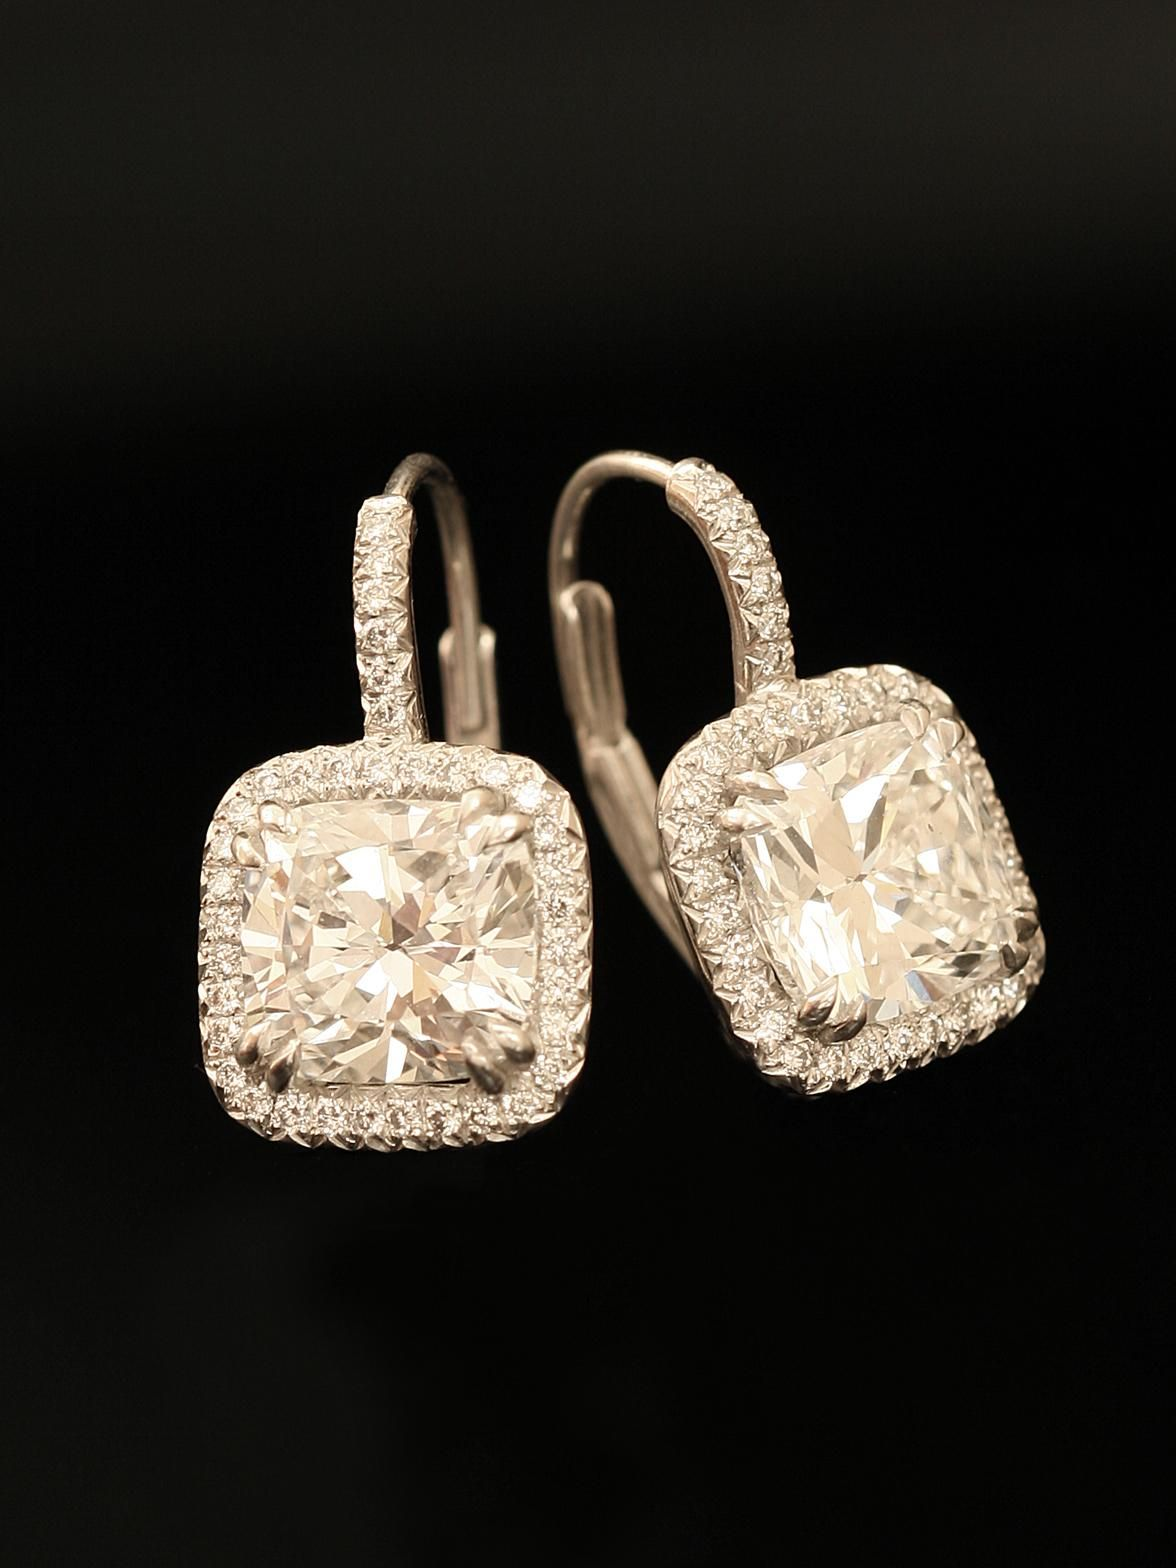 Norman Silverman Platinum Diamond Drop Earrings With Two Cushion Cut  Diamonds Weighing Approximately 421ct Total